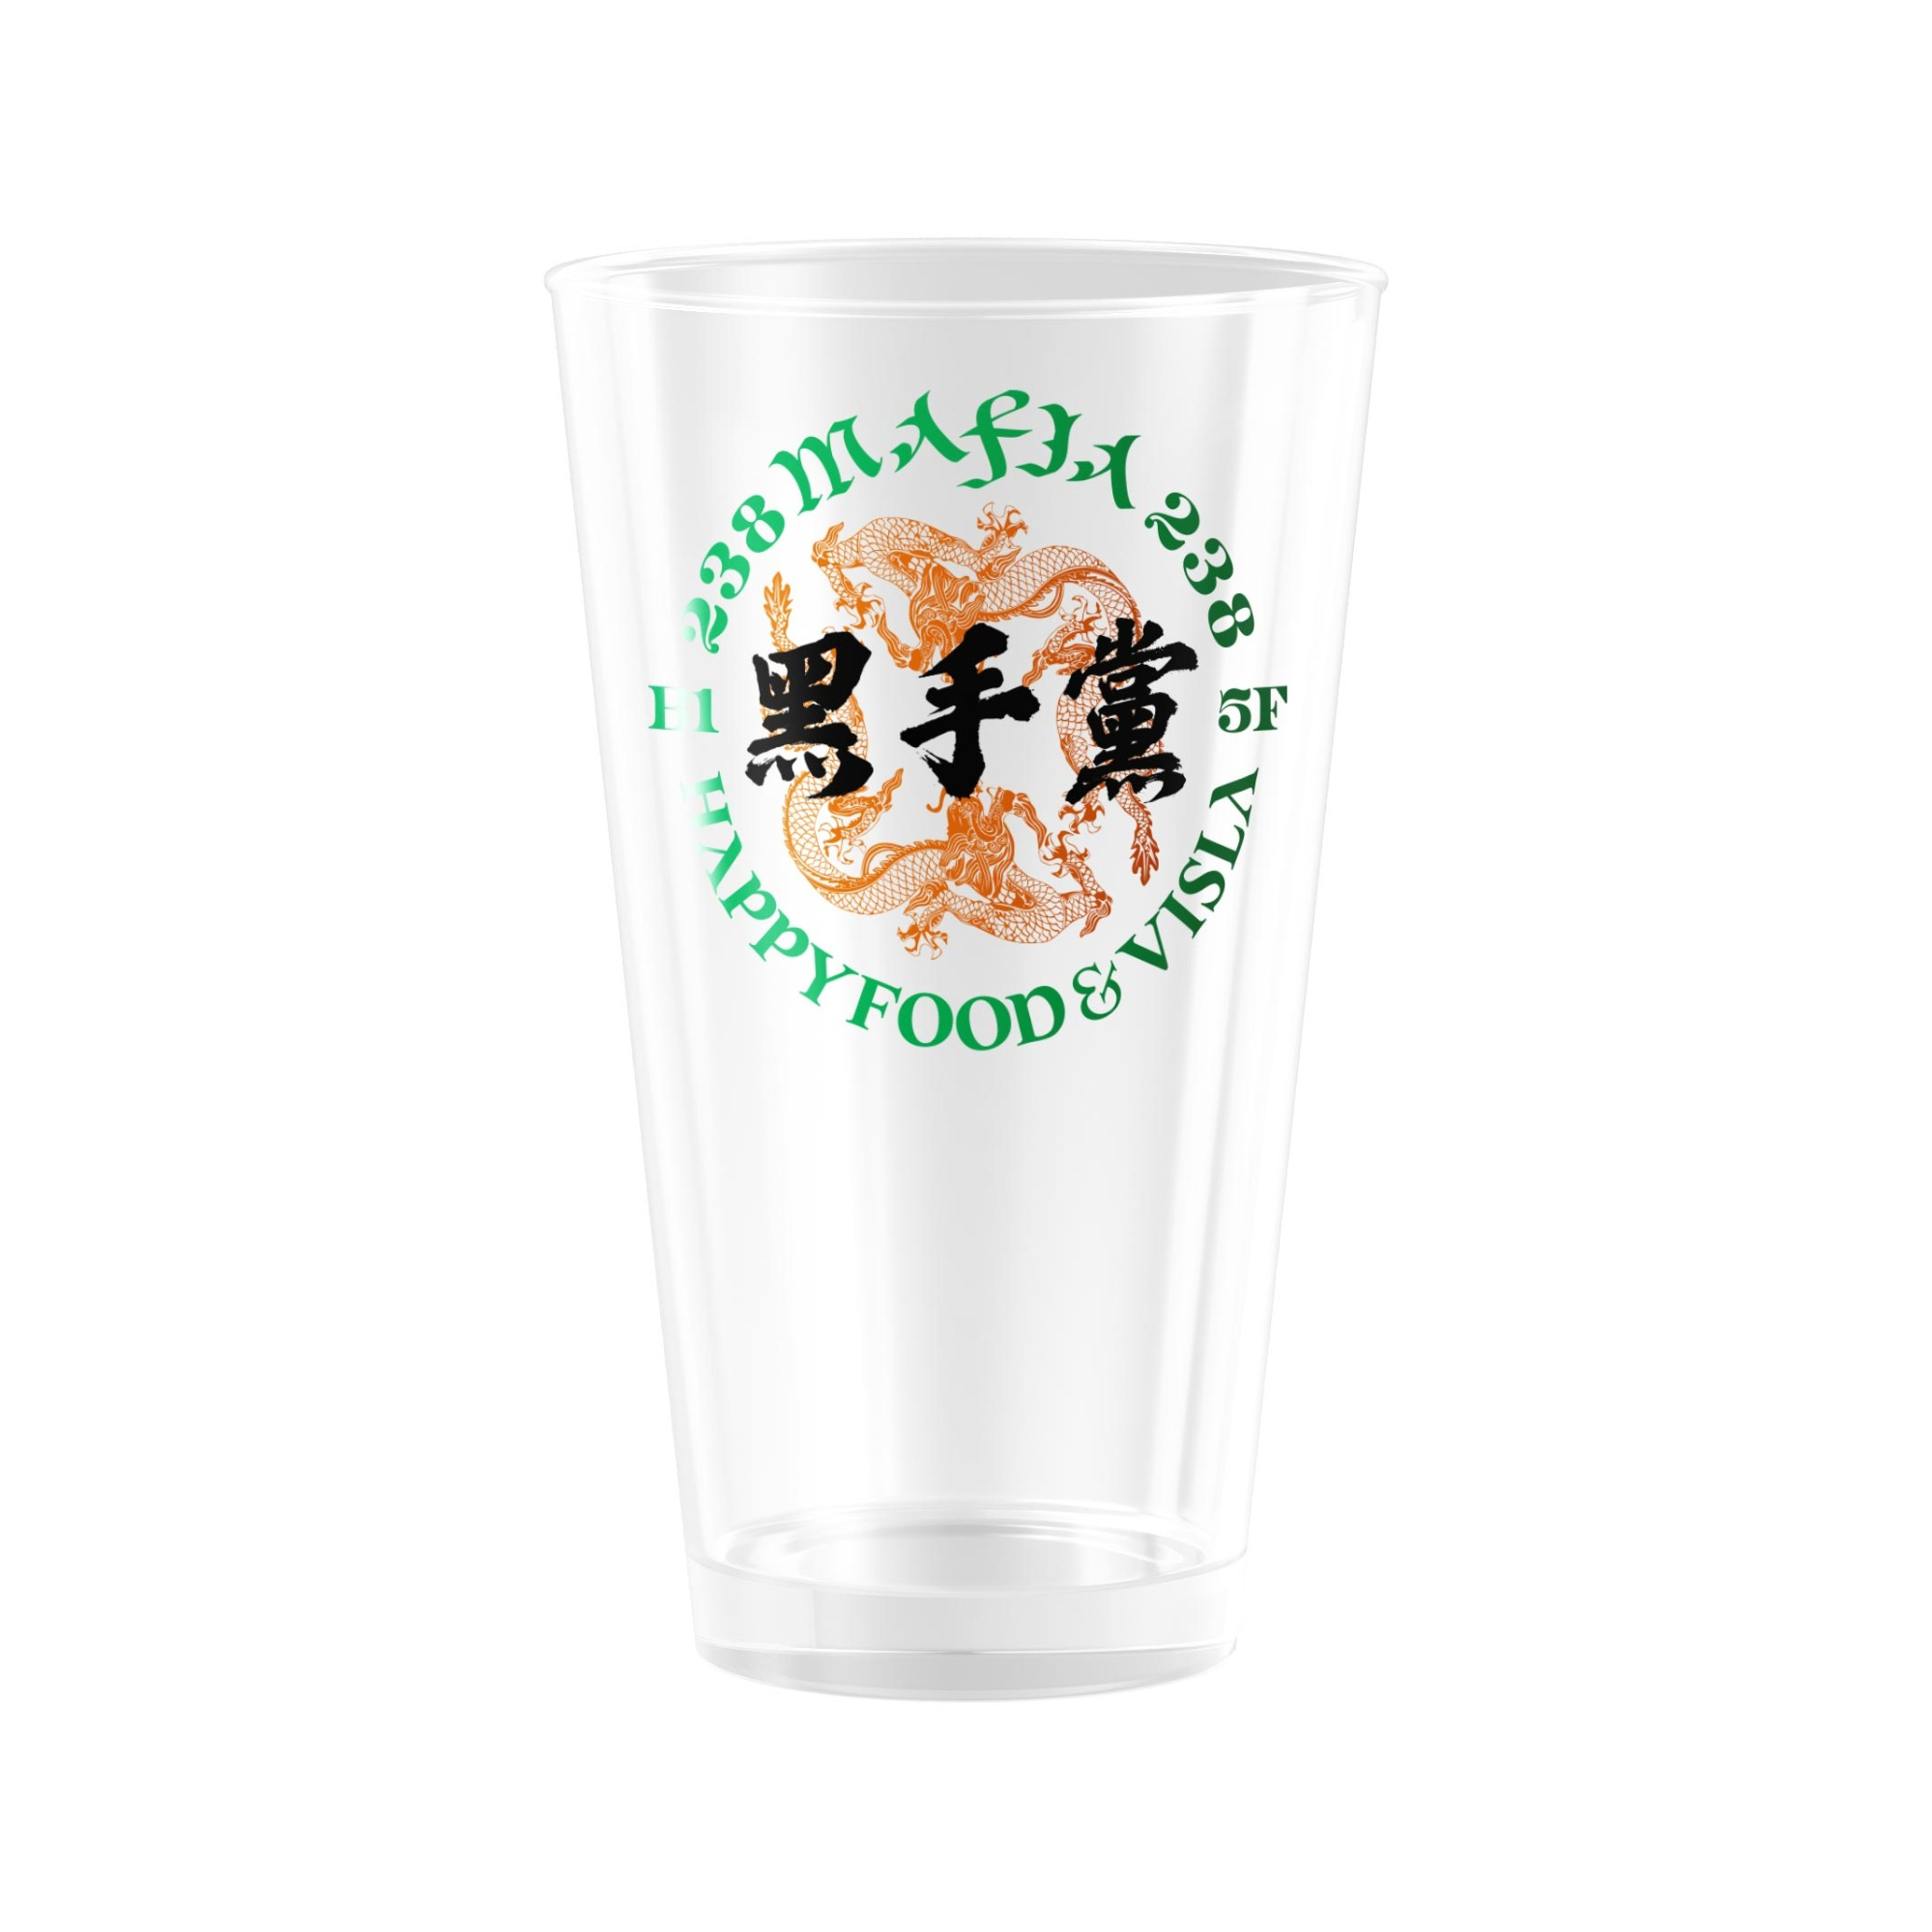 HAPPY FOOD x VISLA 238 MAFIA Beer mug